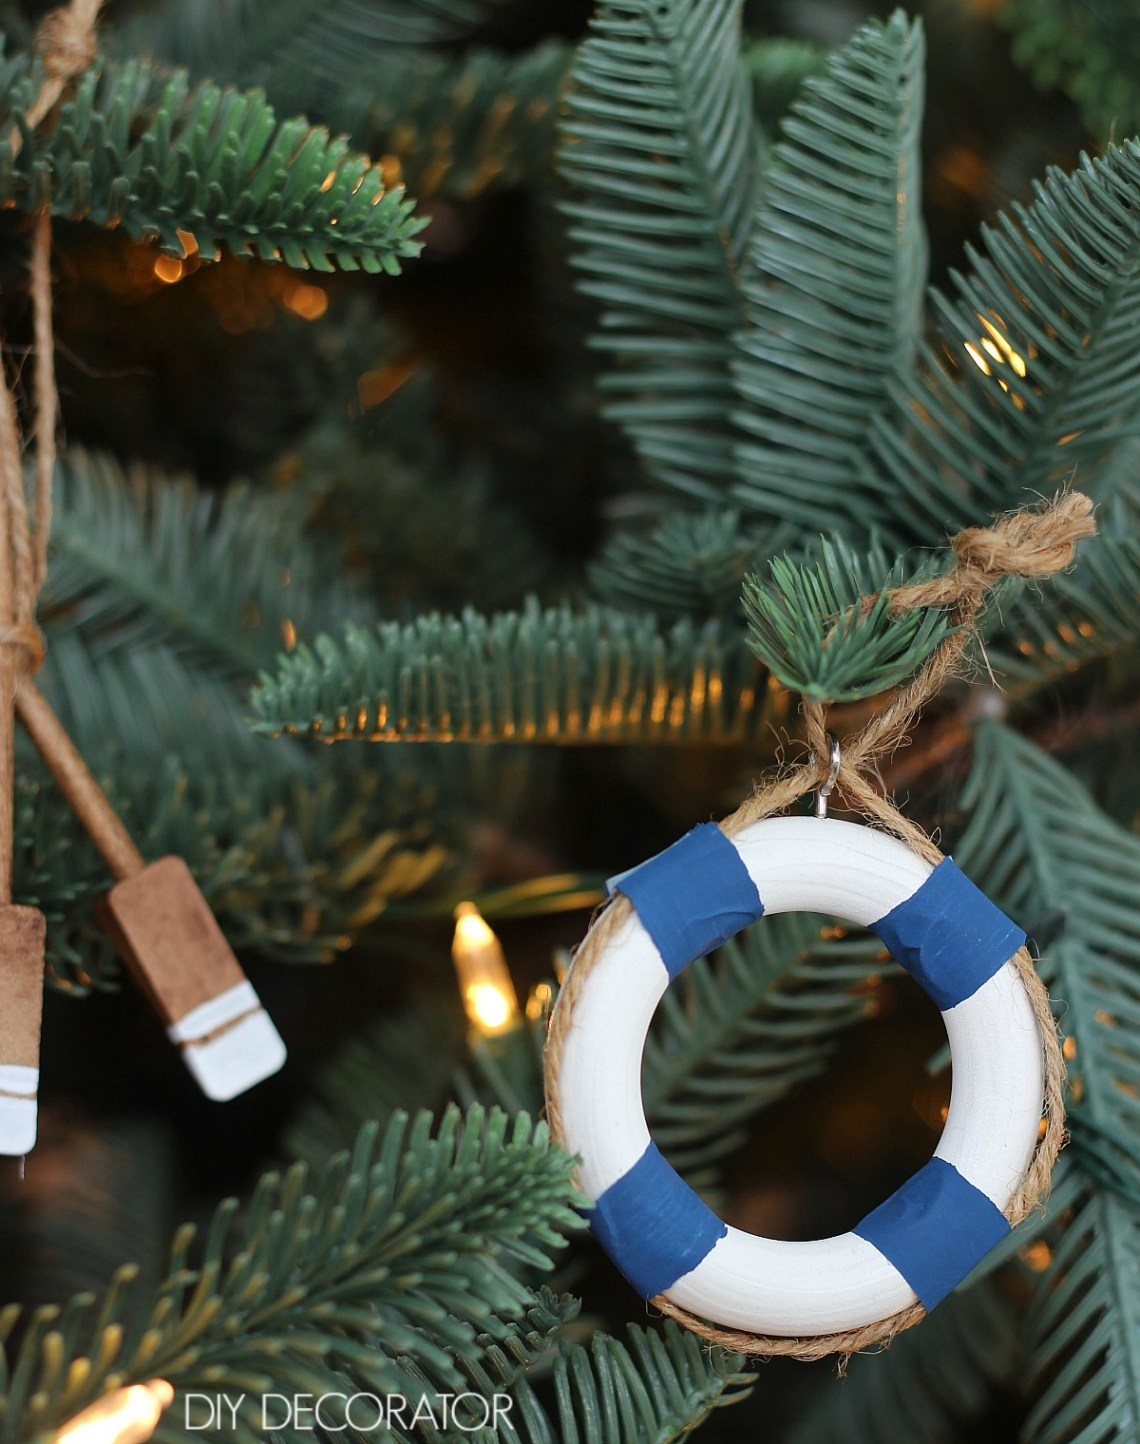 DIY mini Life buoy decorations